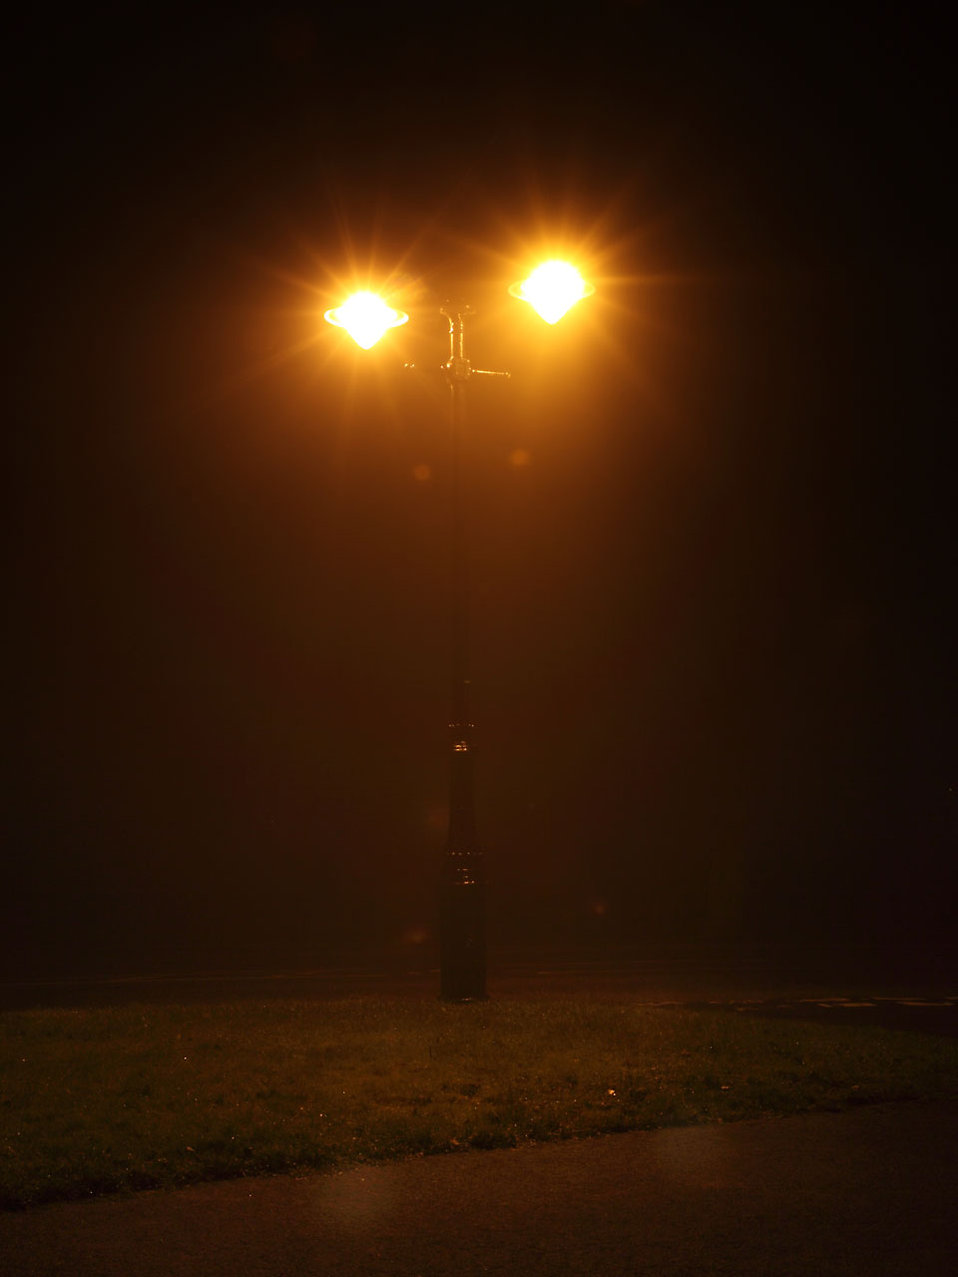 A street lamp shining on a foggy night : Free Stock Photo